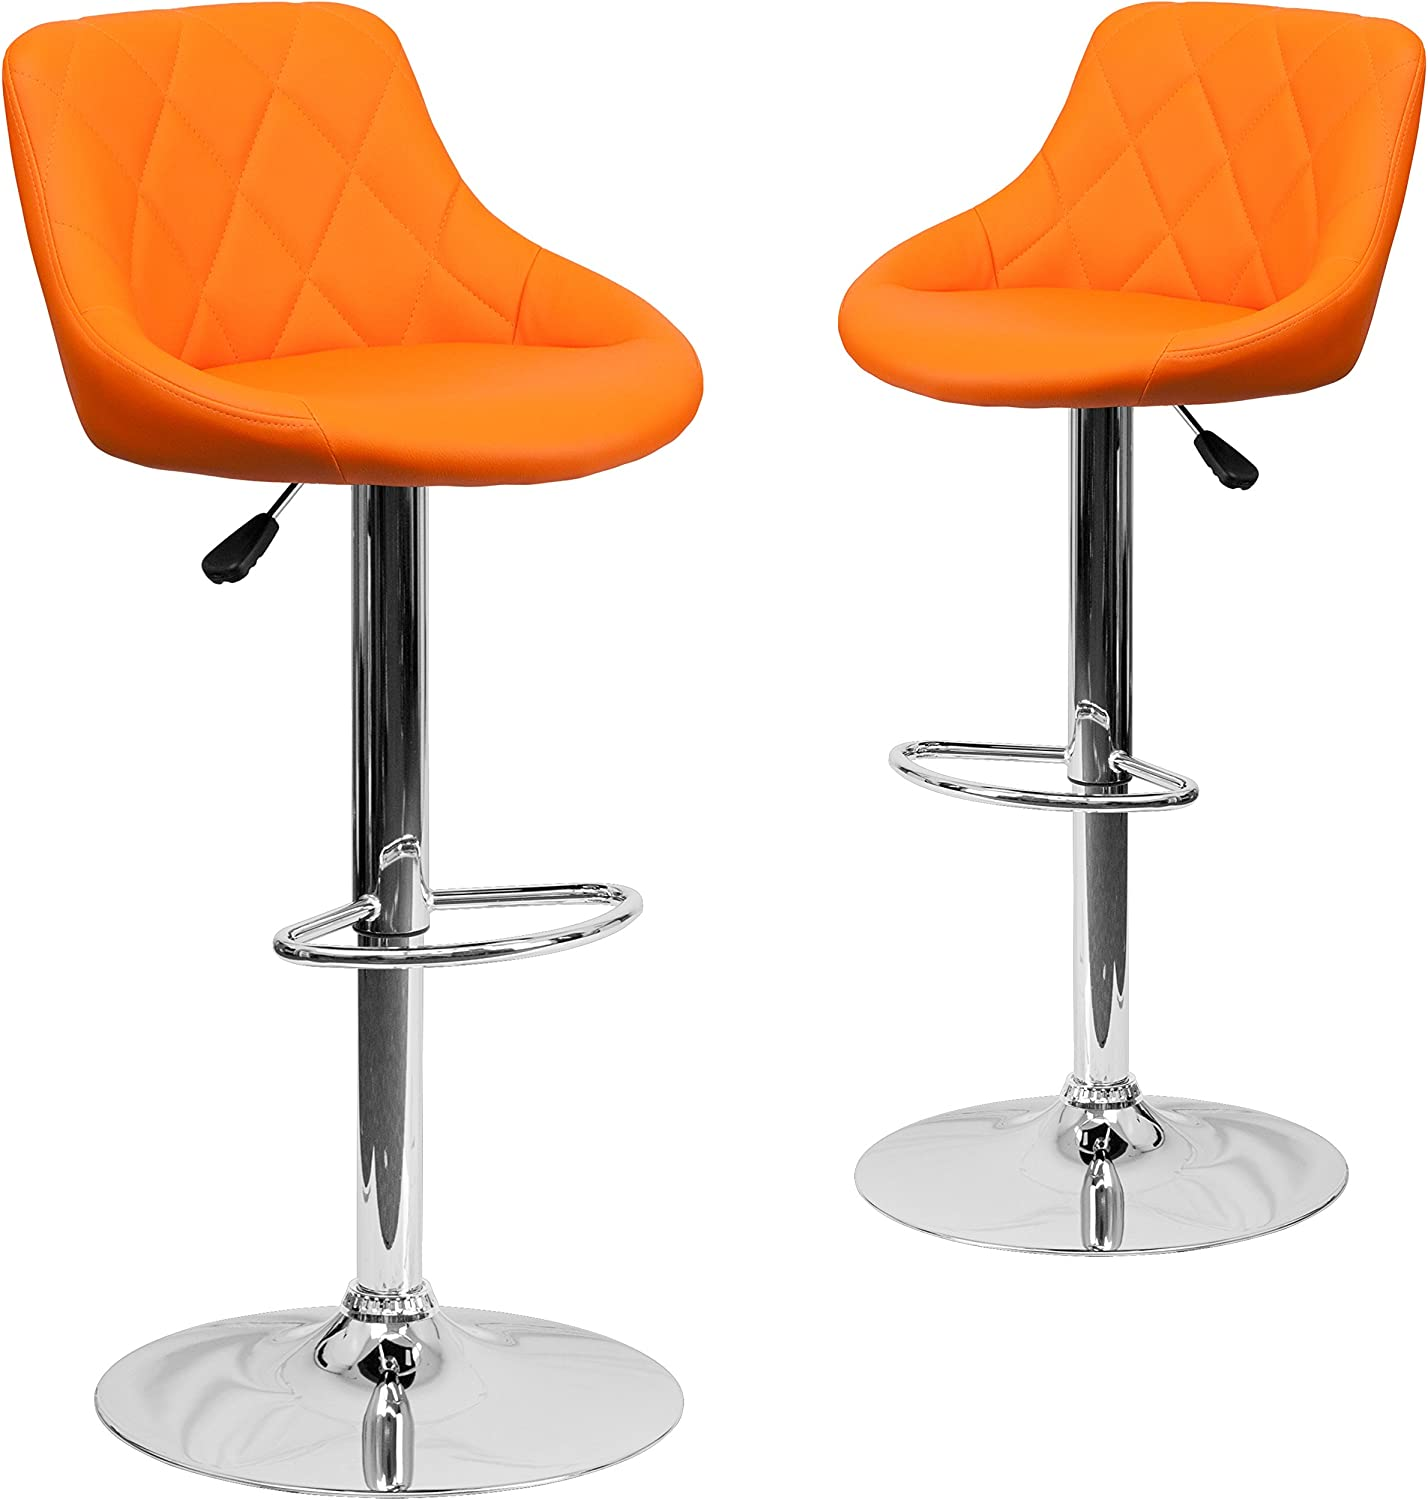 Flash Furniture 2 Pk. Contemporary Orange Vinyl Bucket Seat Adjustable Height Barstool with Diamond Pattern Back and Chrome Base